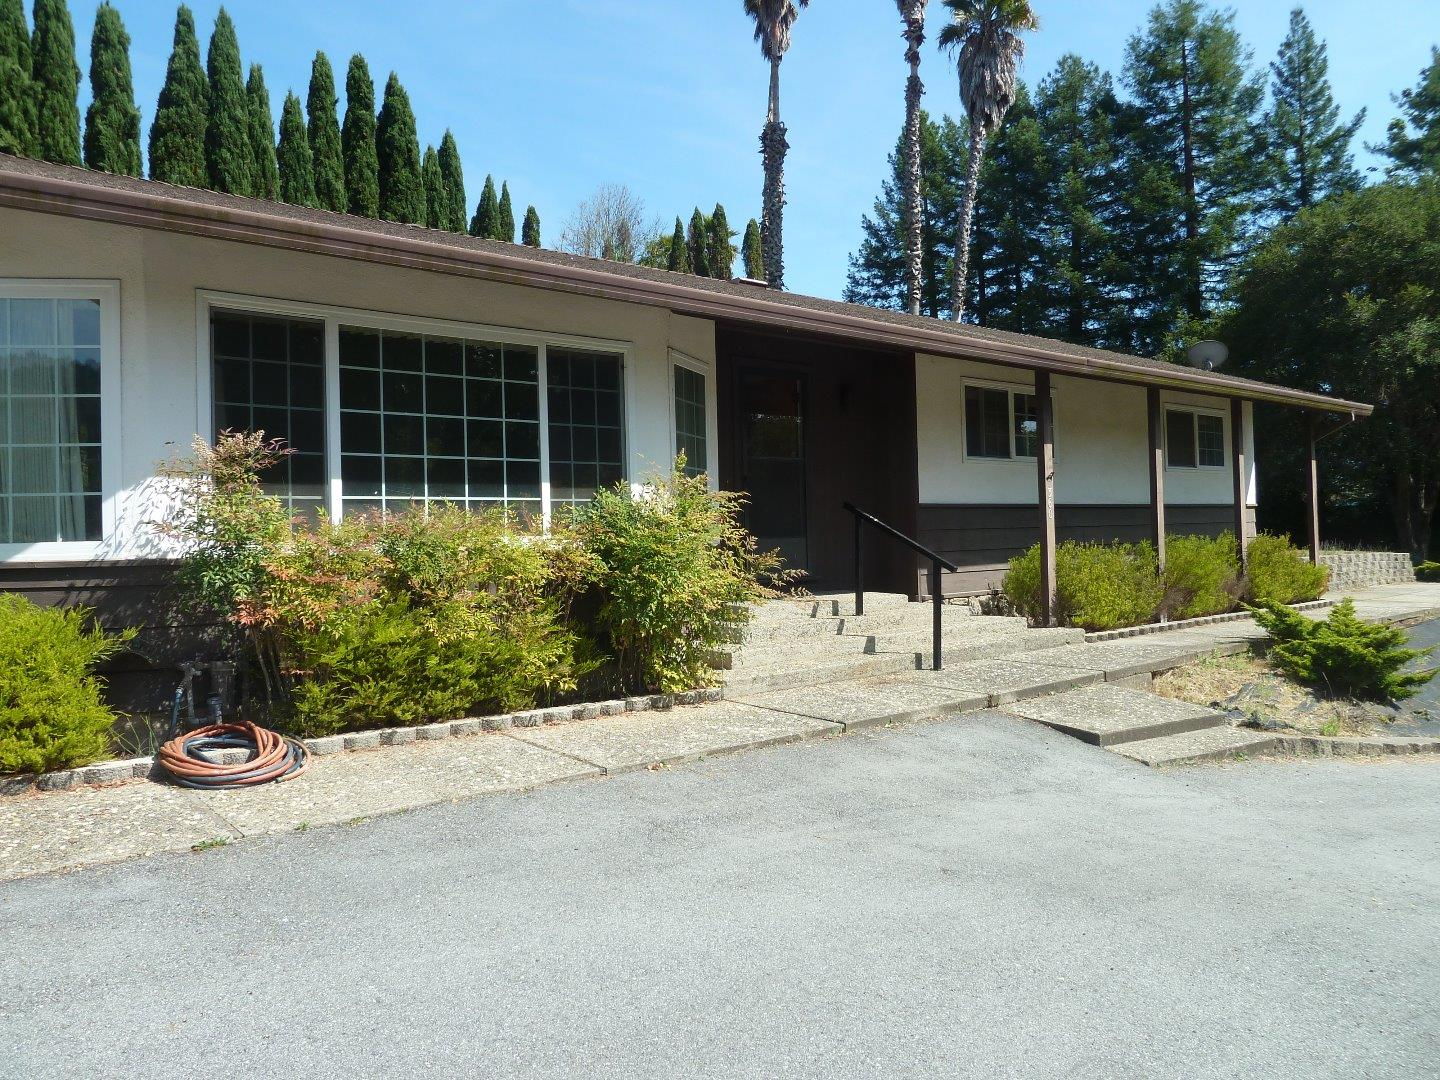 Out of the fog in glorious sunny Corralitos this 3 bedroom 2 bath home has plenty of room for family, hobbies and entertaining. Sunken living room with gas fireplace opens to a separate formal dining room. Kitchen with built in oven and cooktop and breakfast bar adjoins a sitting area with sliding door to covered patio. Hot tub access from patio or directly from master bedroom.  RV parking with clean out into public sewer.  Huge attached garage with attached large workshop is ideal for big projects. Public utilities including sewer.  Minutes from Corralitos Market  - it is the perfect location.